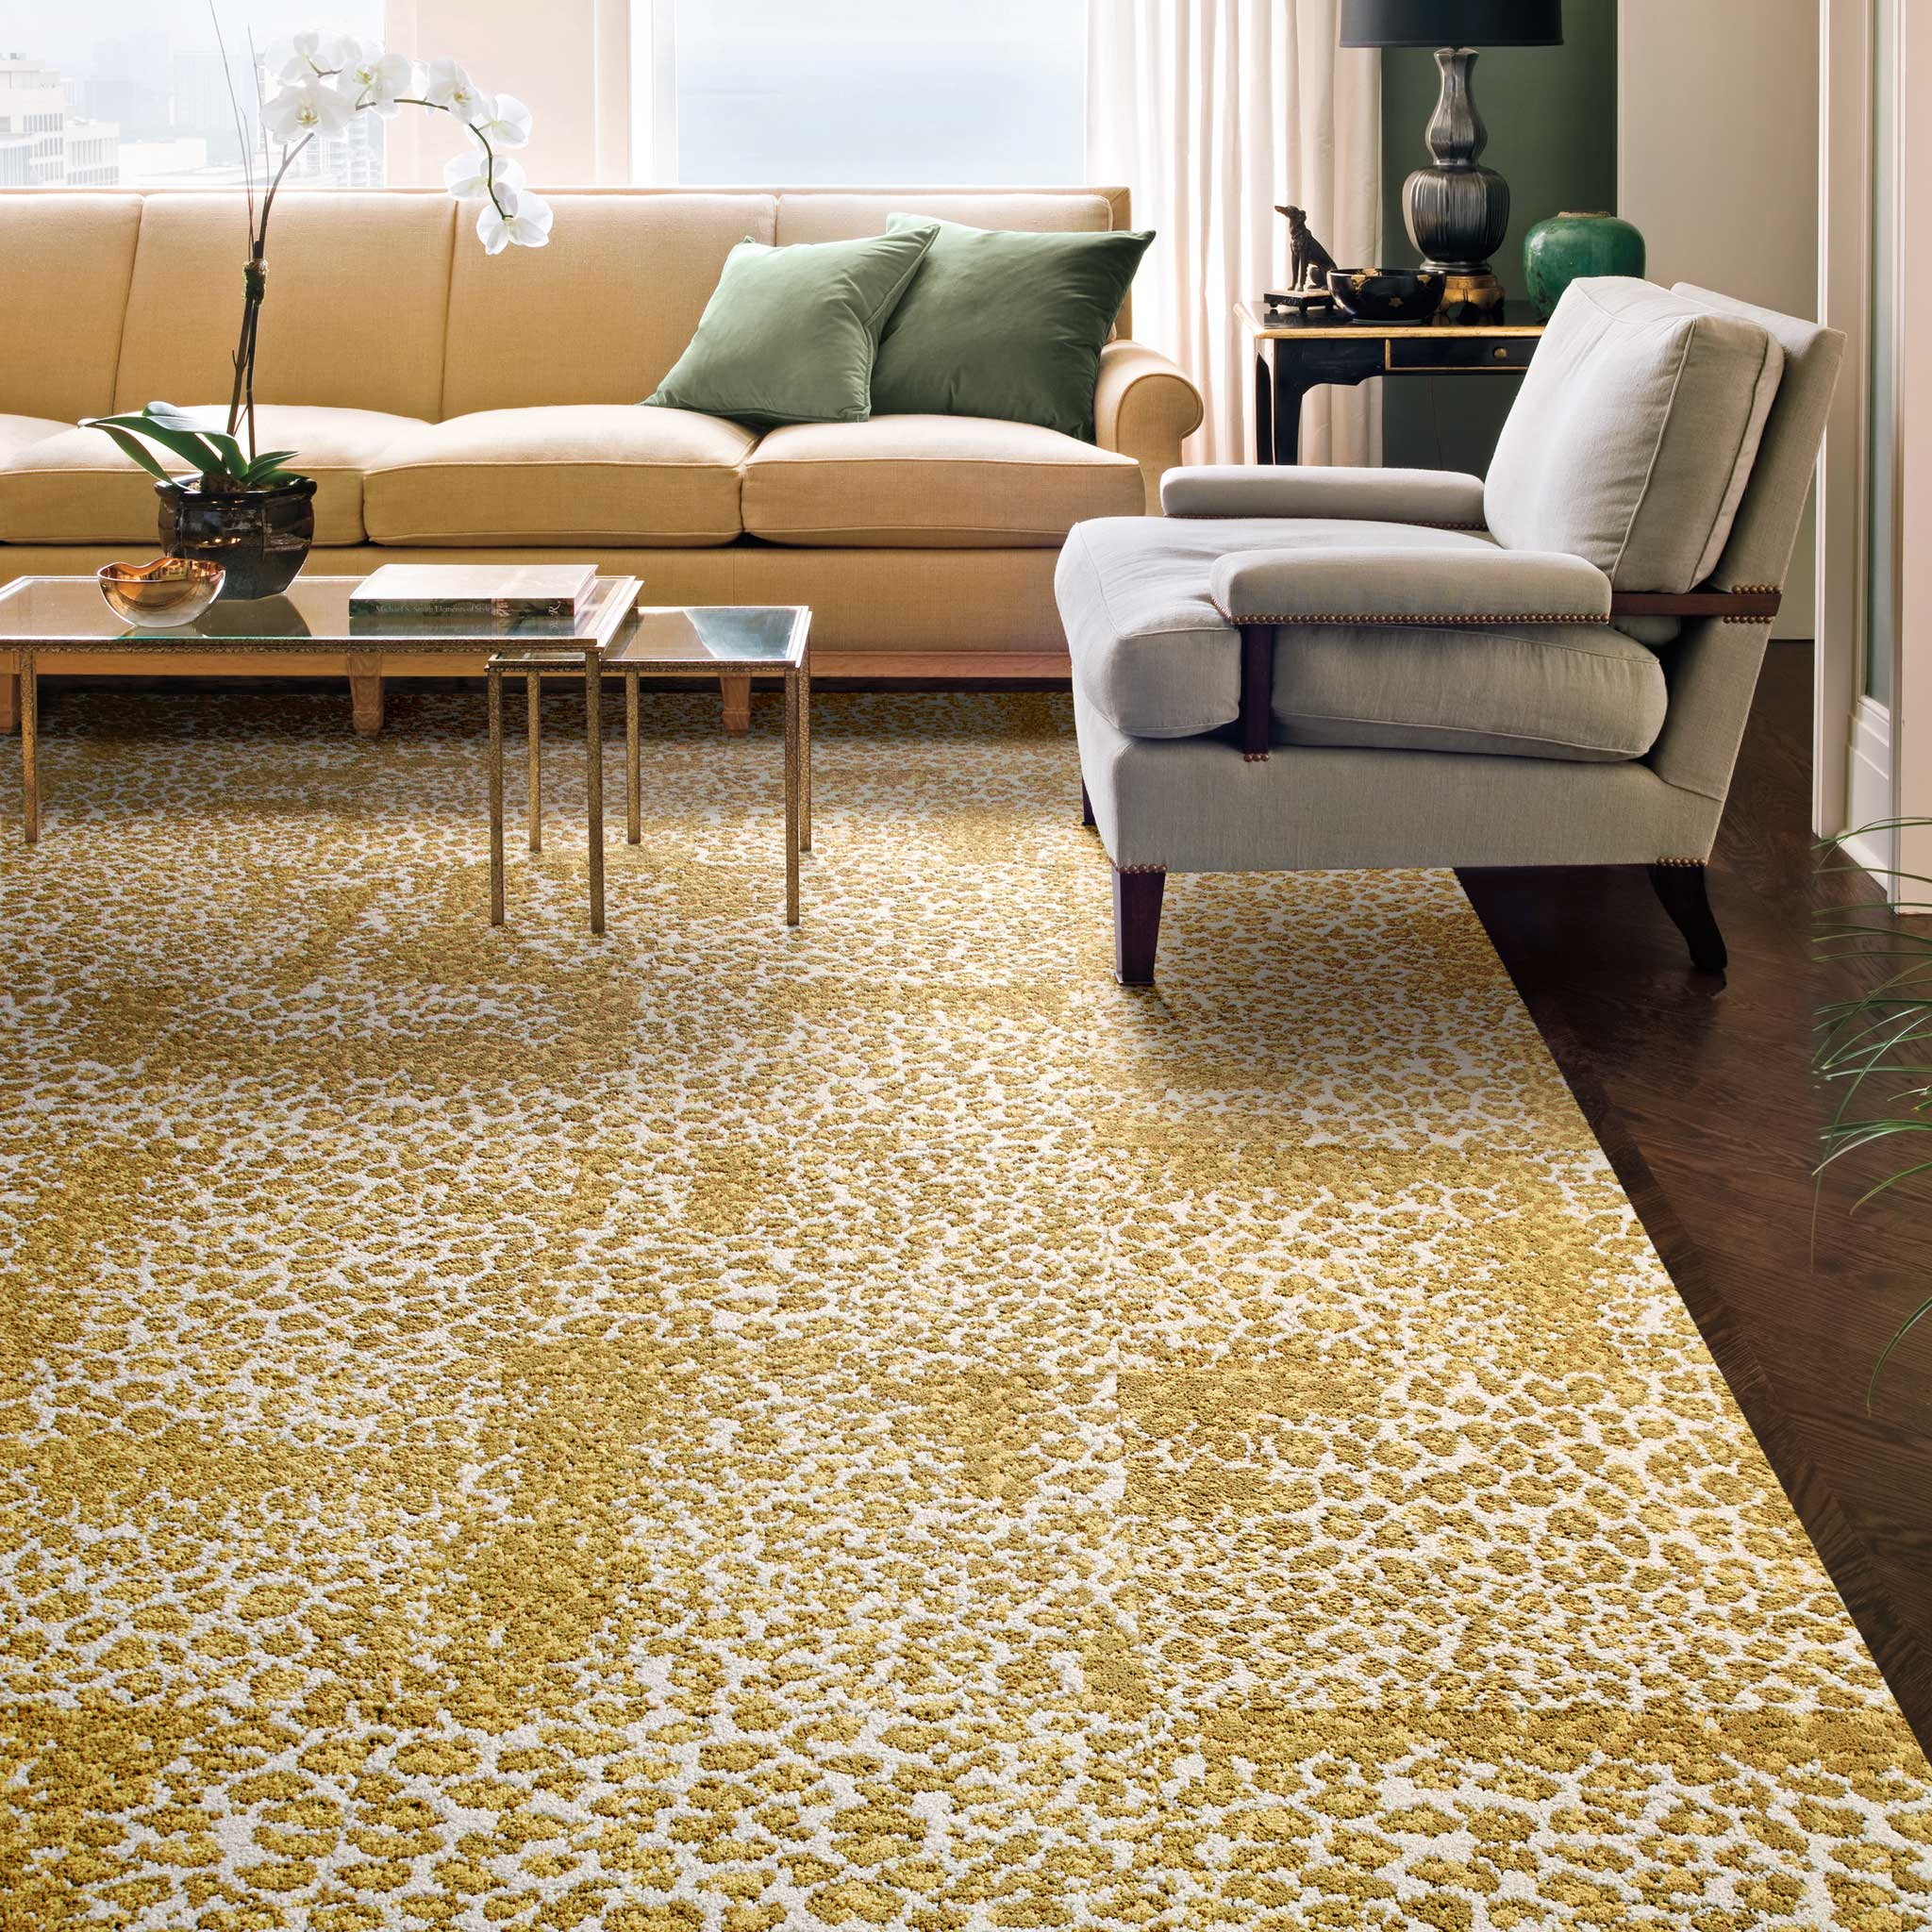 Design Flor Tiles flor carpet tiles stellar interior design spot on maize wb3